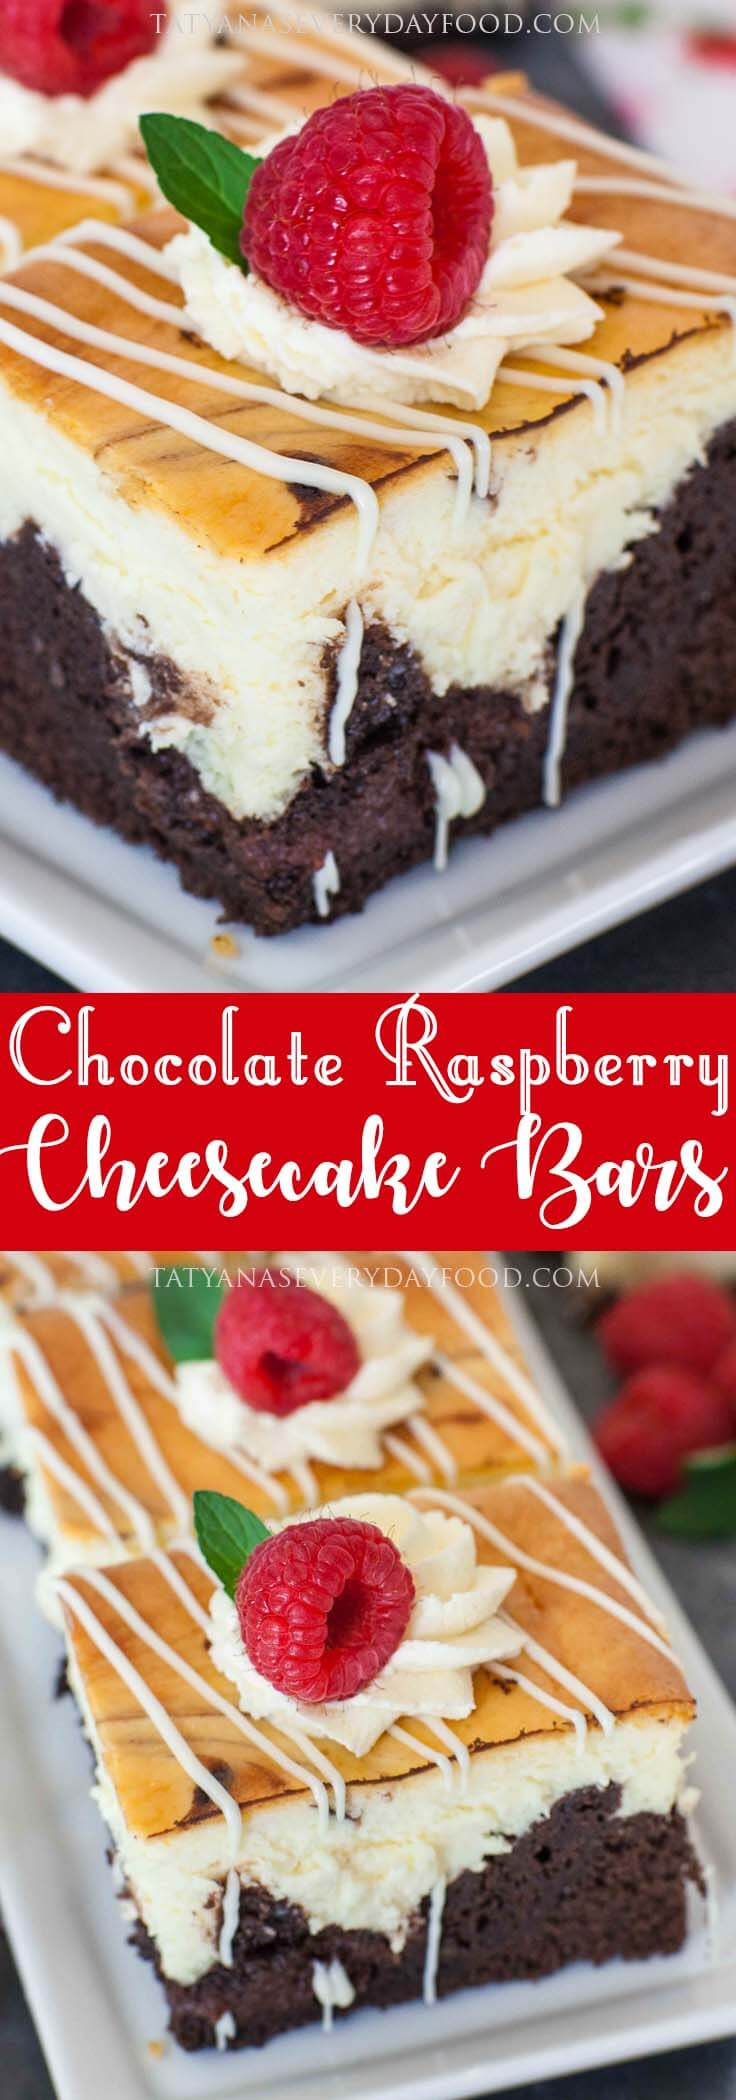 Chocolate Raspberry Cheesecake Bars with video recipe